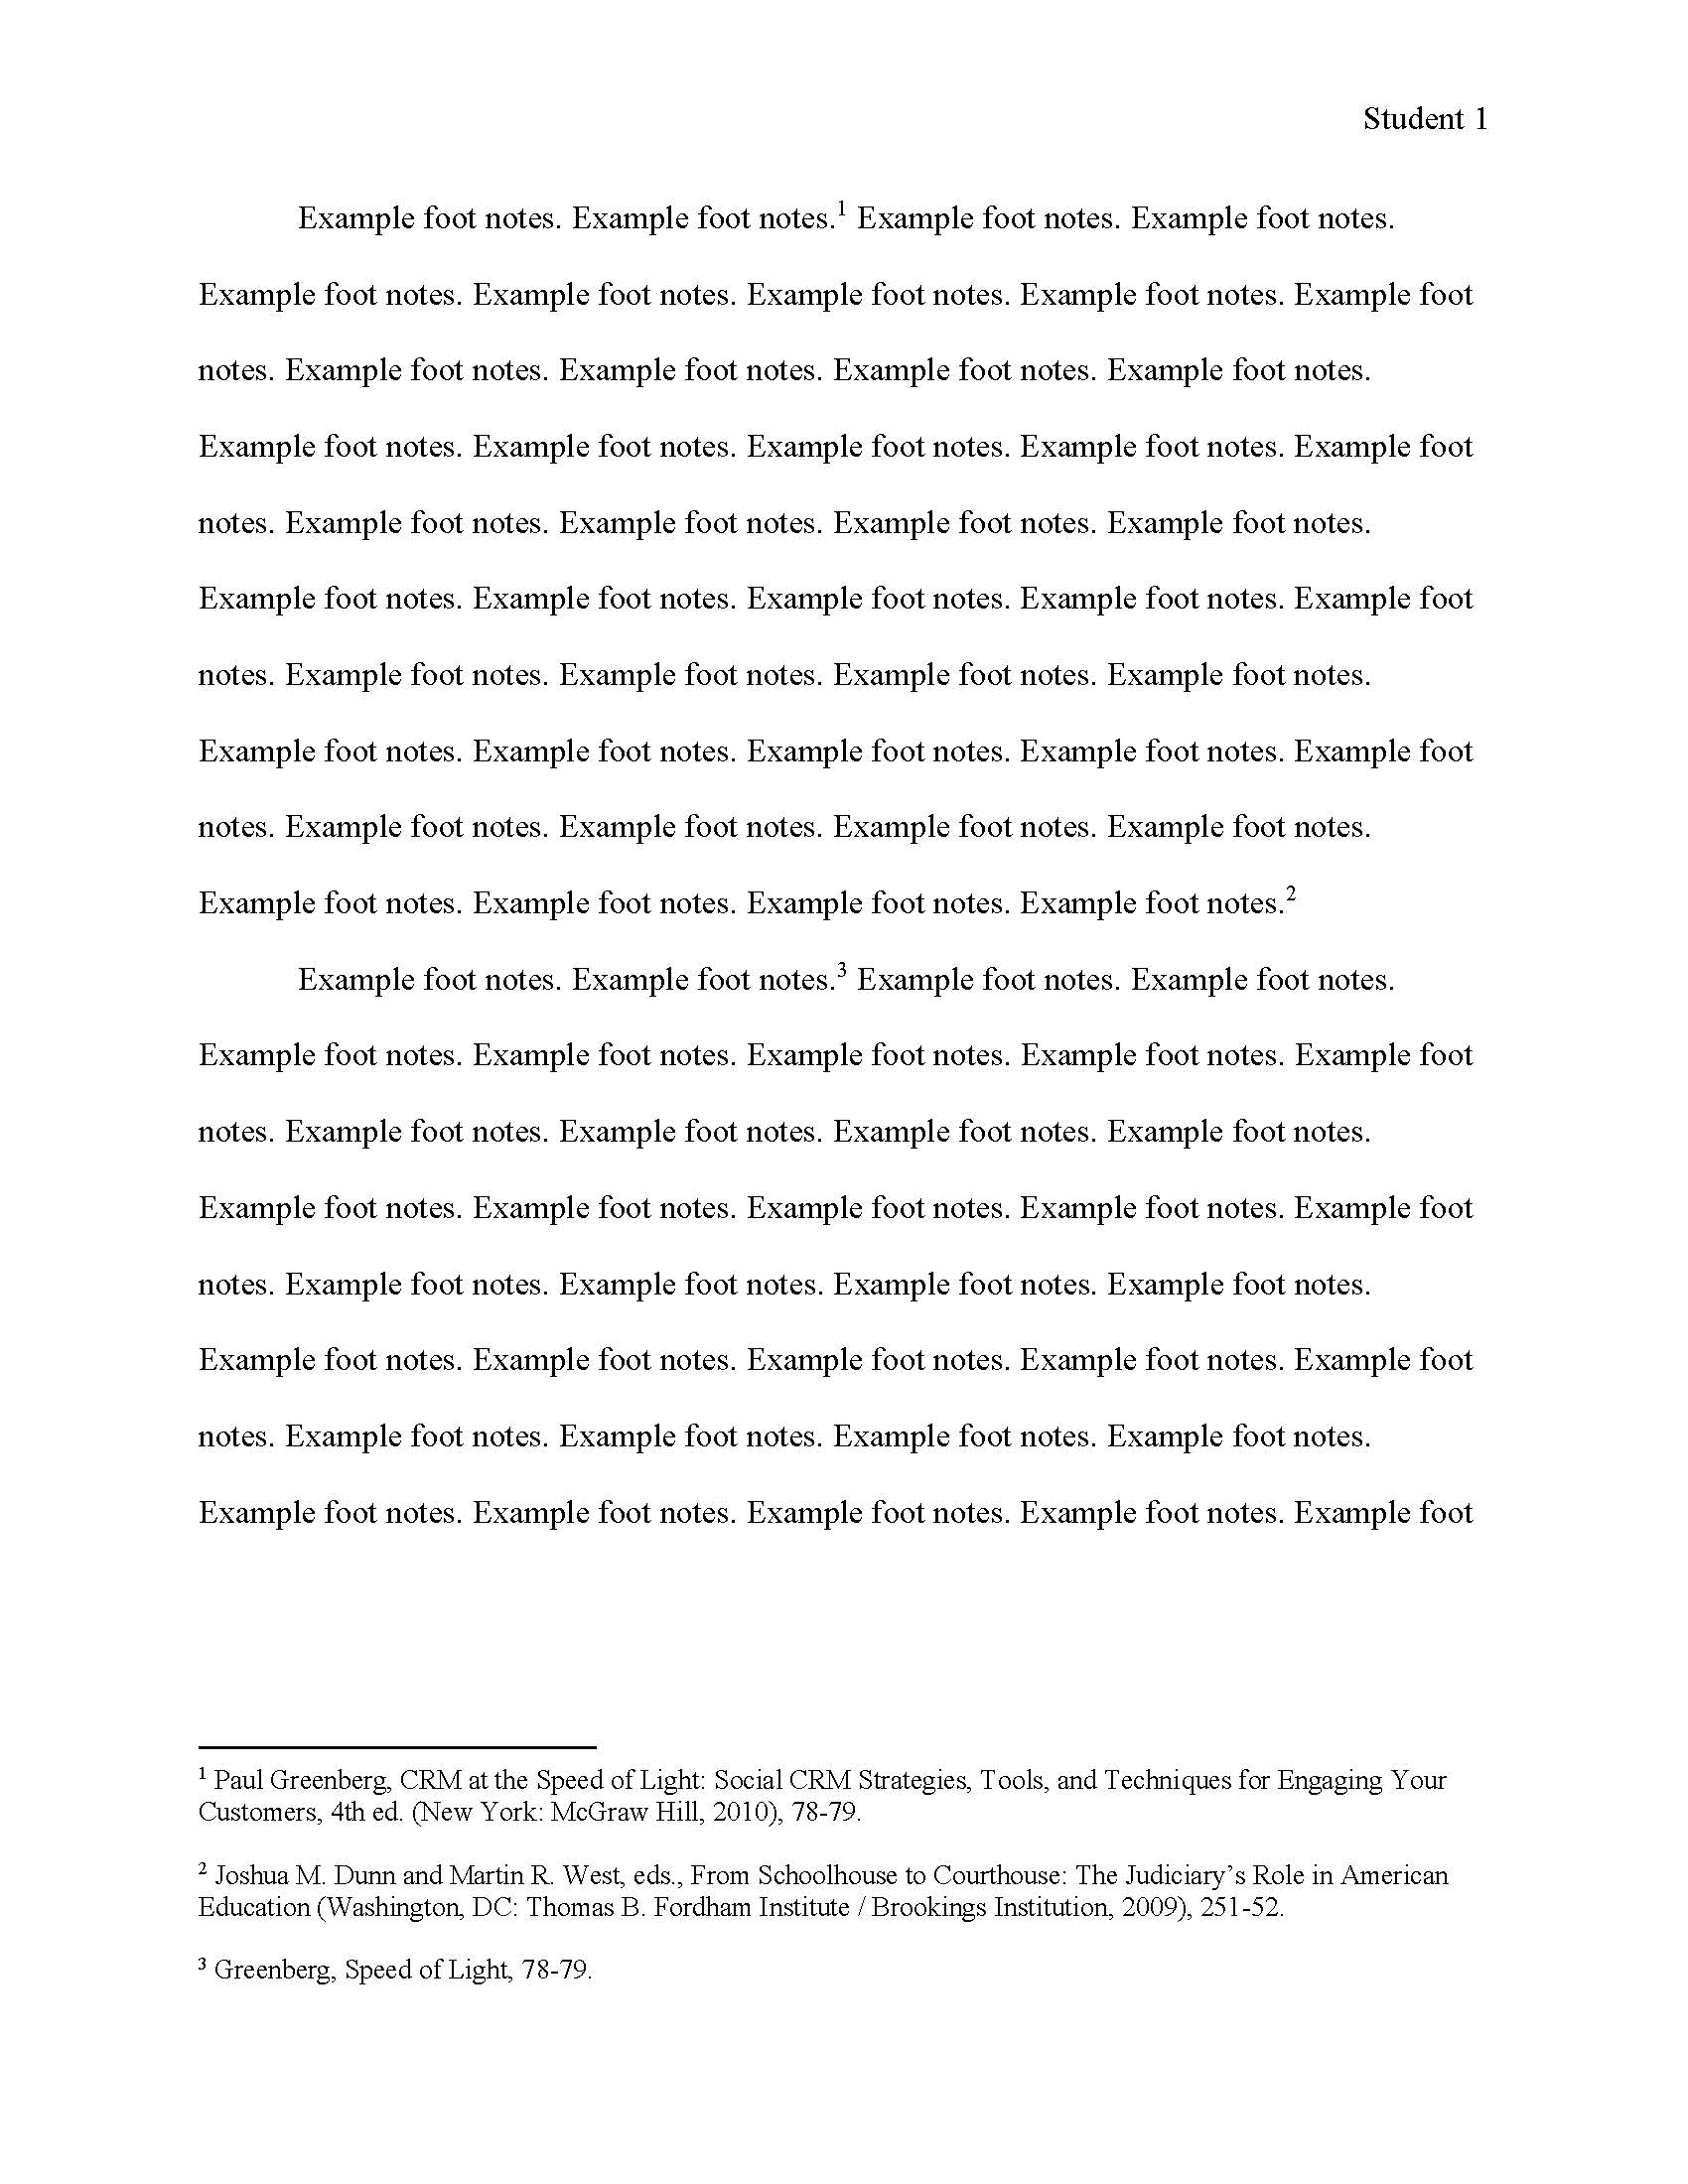 chicago style foot notes Footnotes and endnotes mla footnotes and endnotes are used to give credit to sources of any material borrowed, summarized or paraphrased they are intended to refer readers to the exact pages of the works listed in the works cited, references, or bibliography section what is a footnote: the term 'footnote' refers to ancillary notes added to the end of a page.